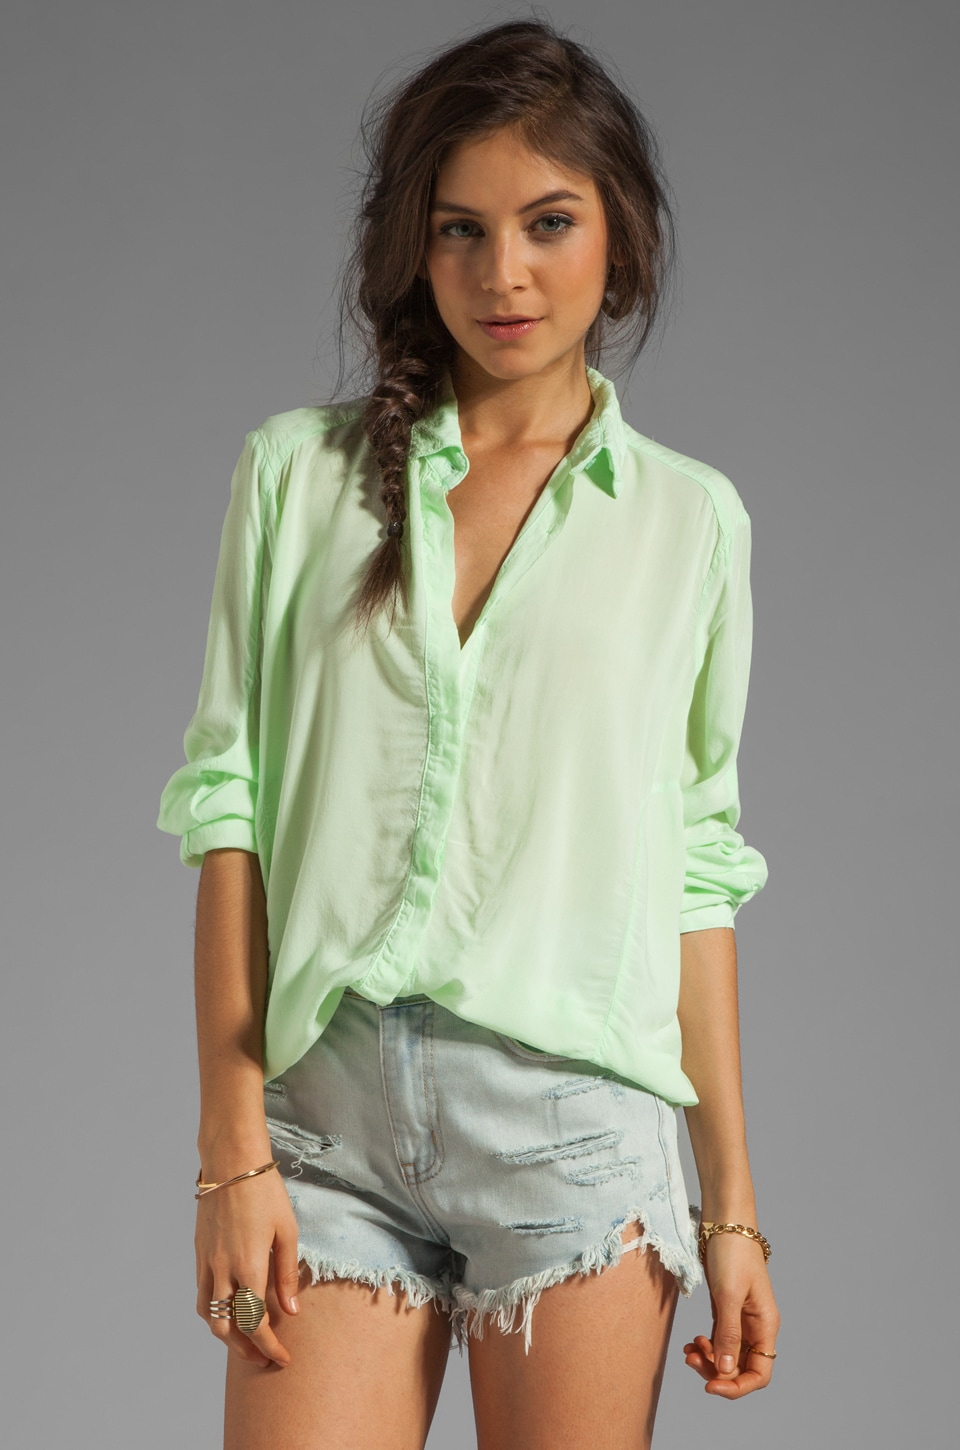 fLuXuS Trona Shirt in Mint